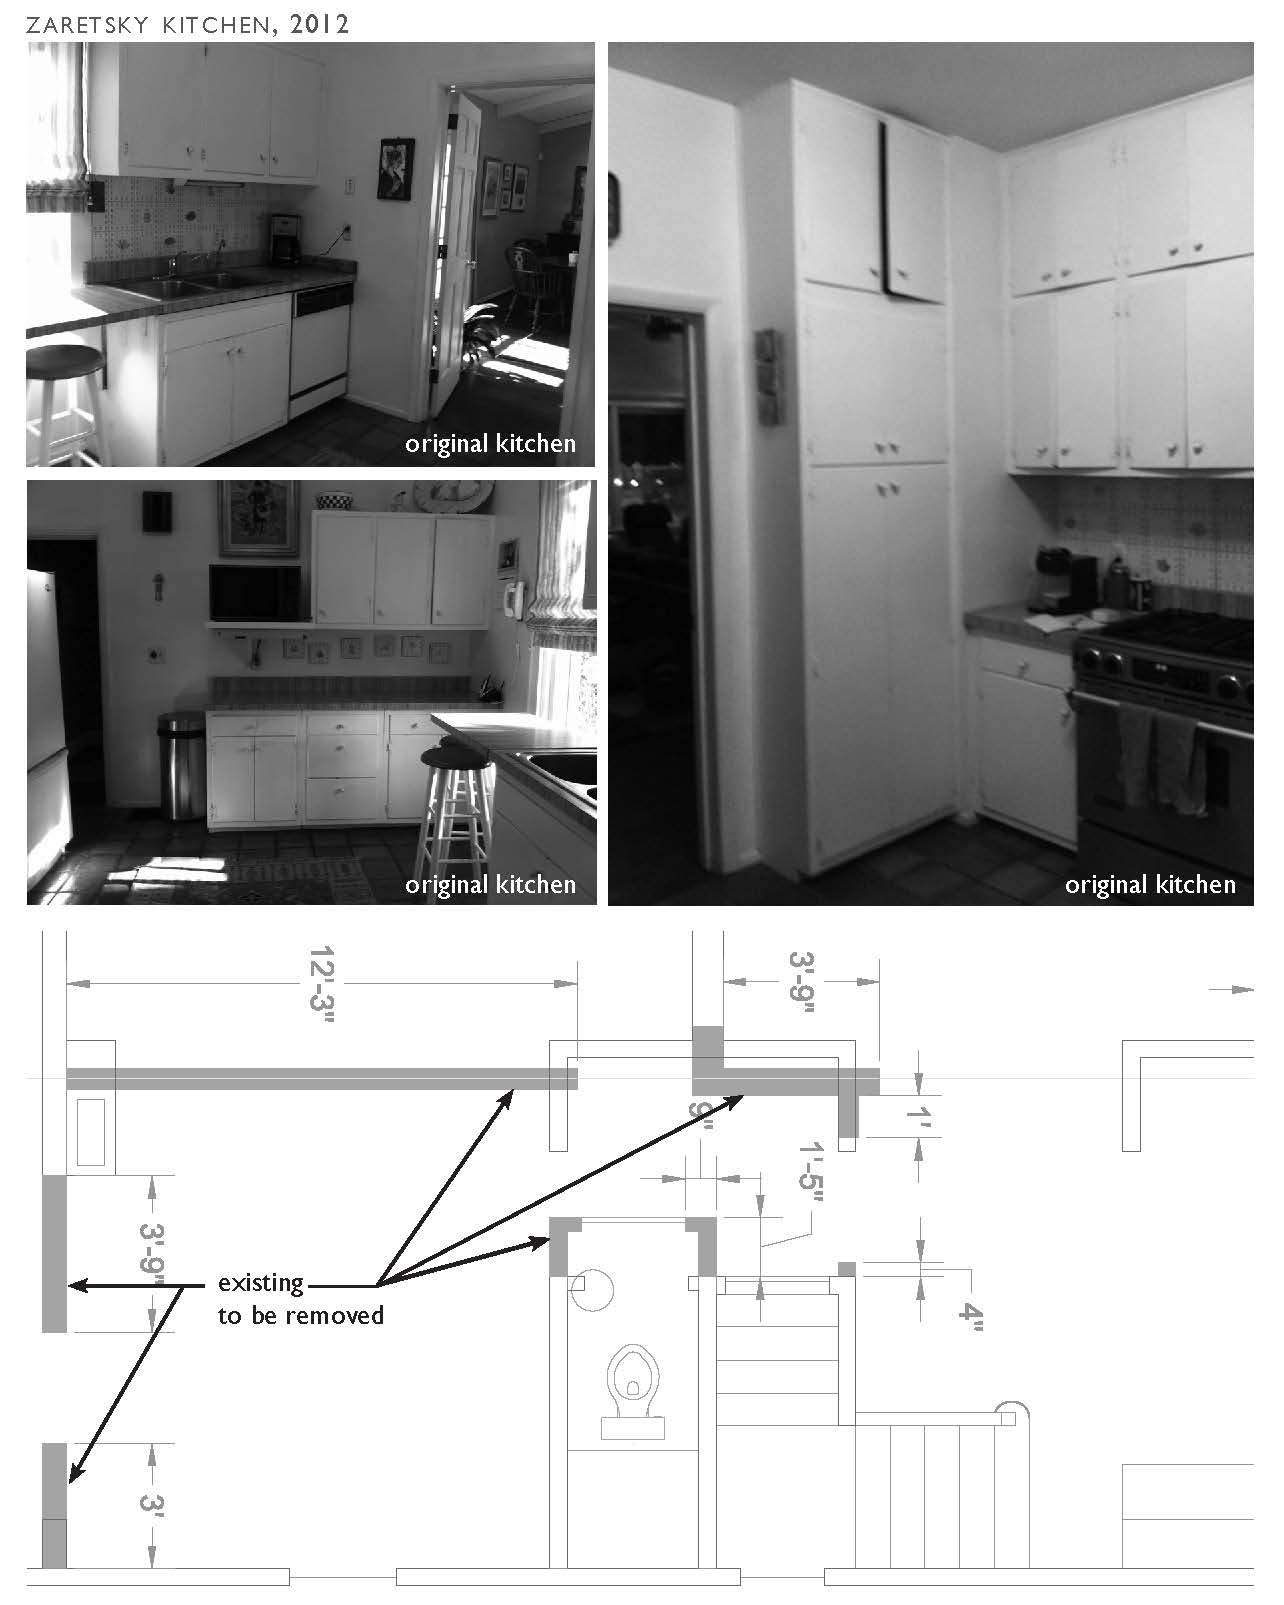 Original kitchen, bathroom and foyer layout